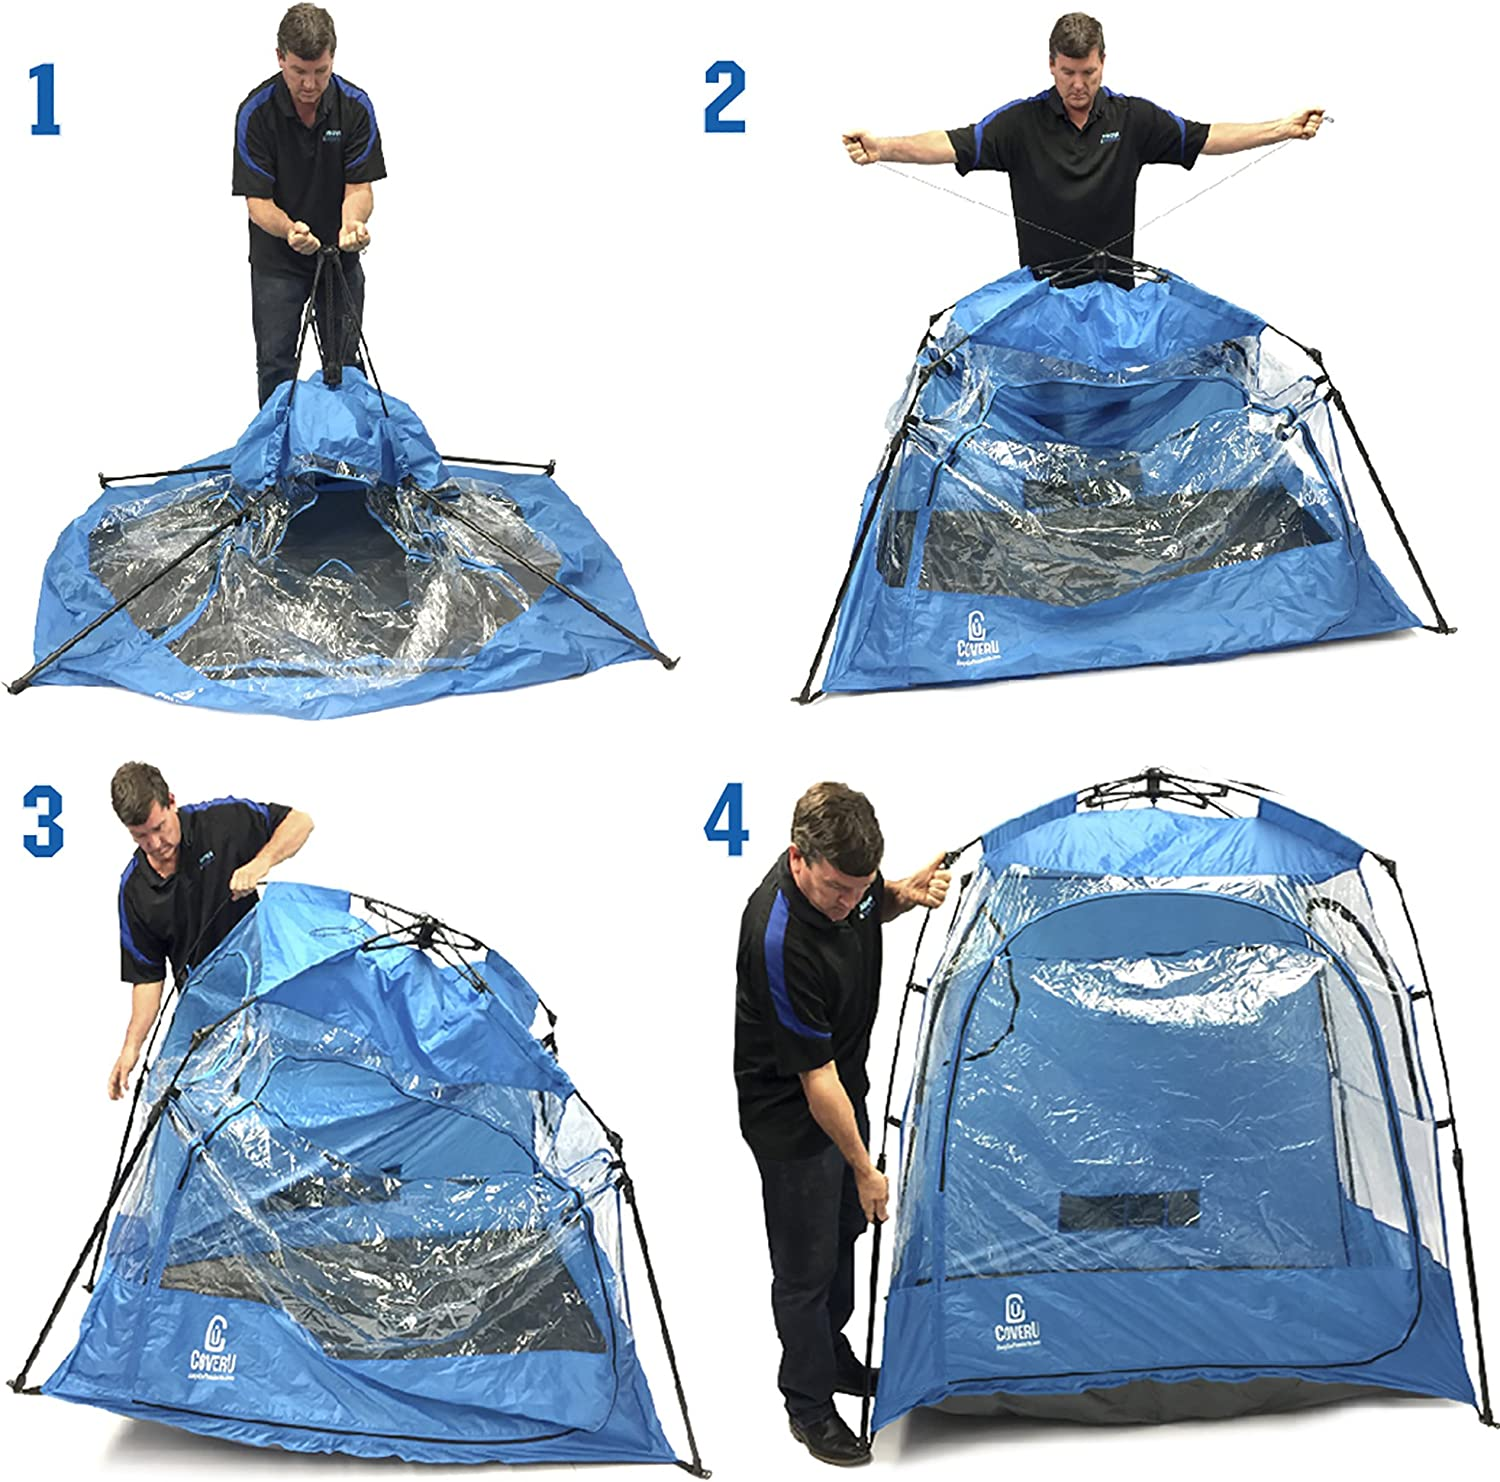 EasyGoProducts CoverU Sports Shelter 2 Person Weather Tent